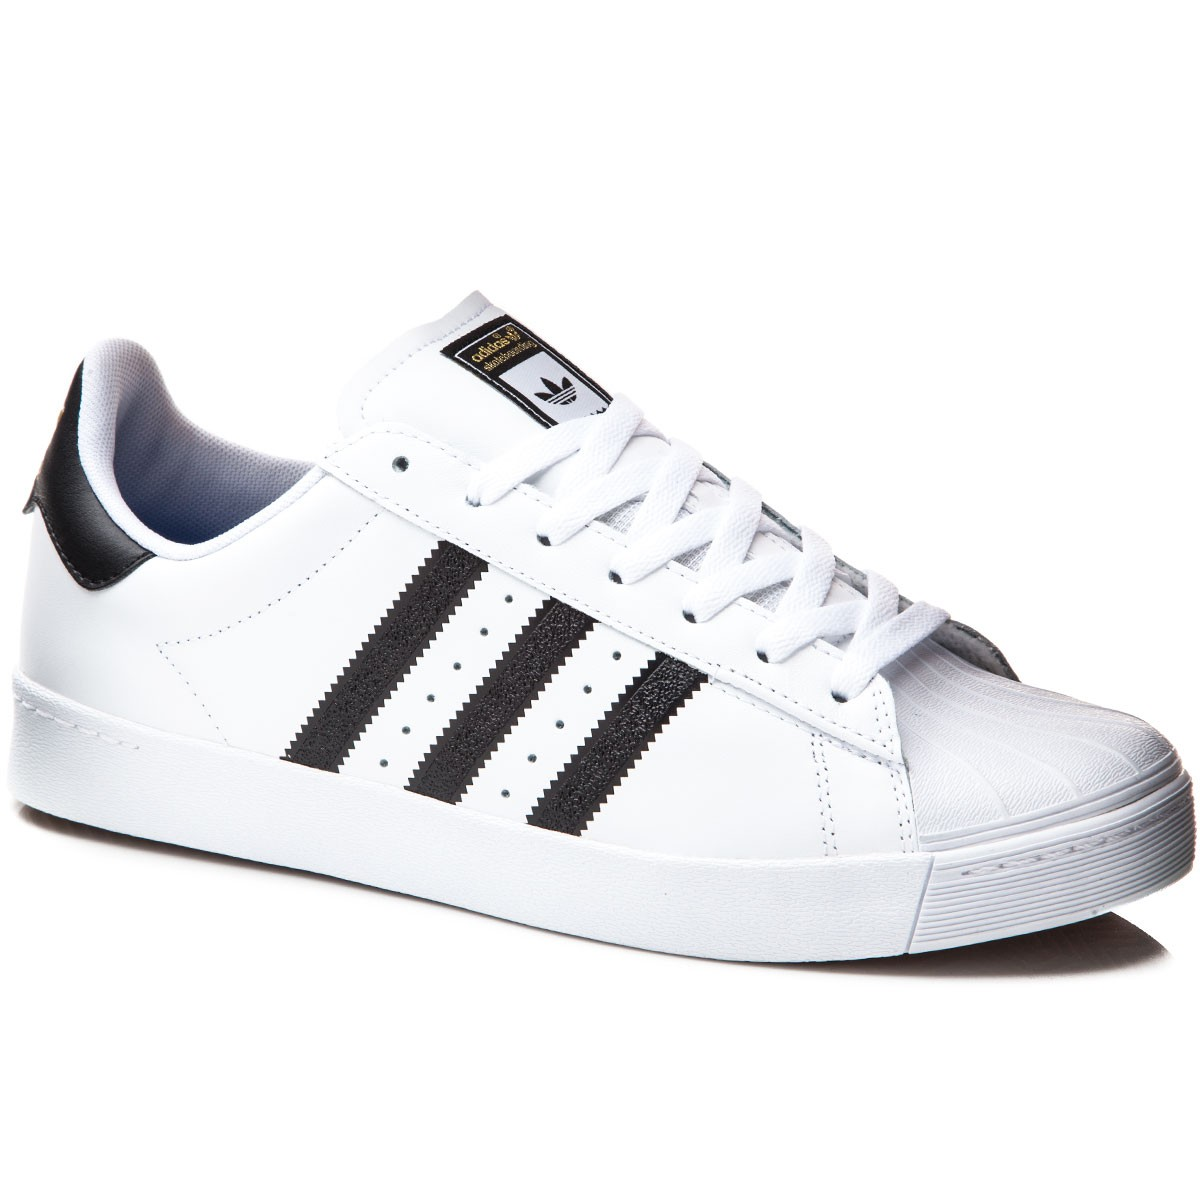 Adidas Superstar Vulc Adv Shoes - White/Black/White - 7.0